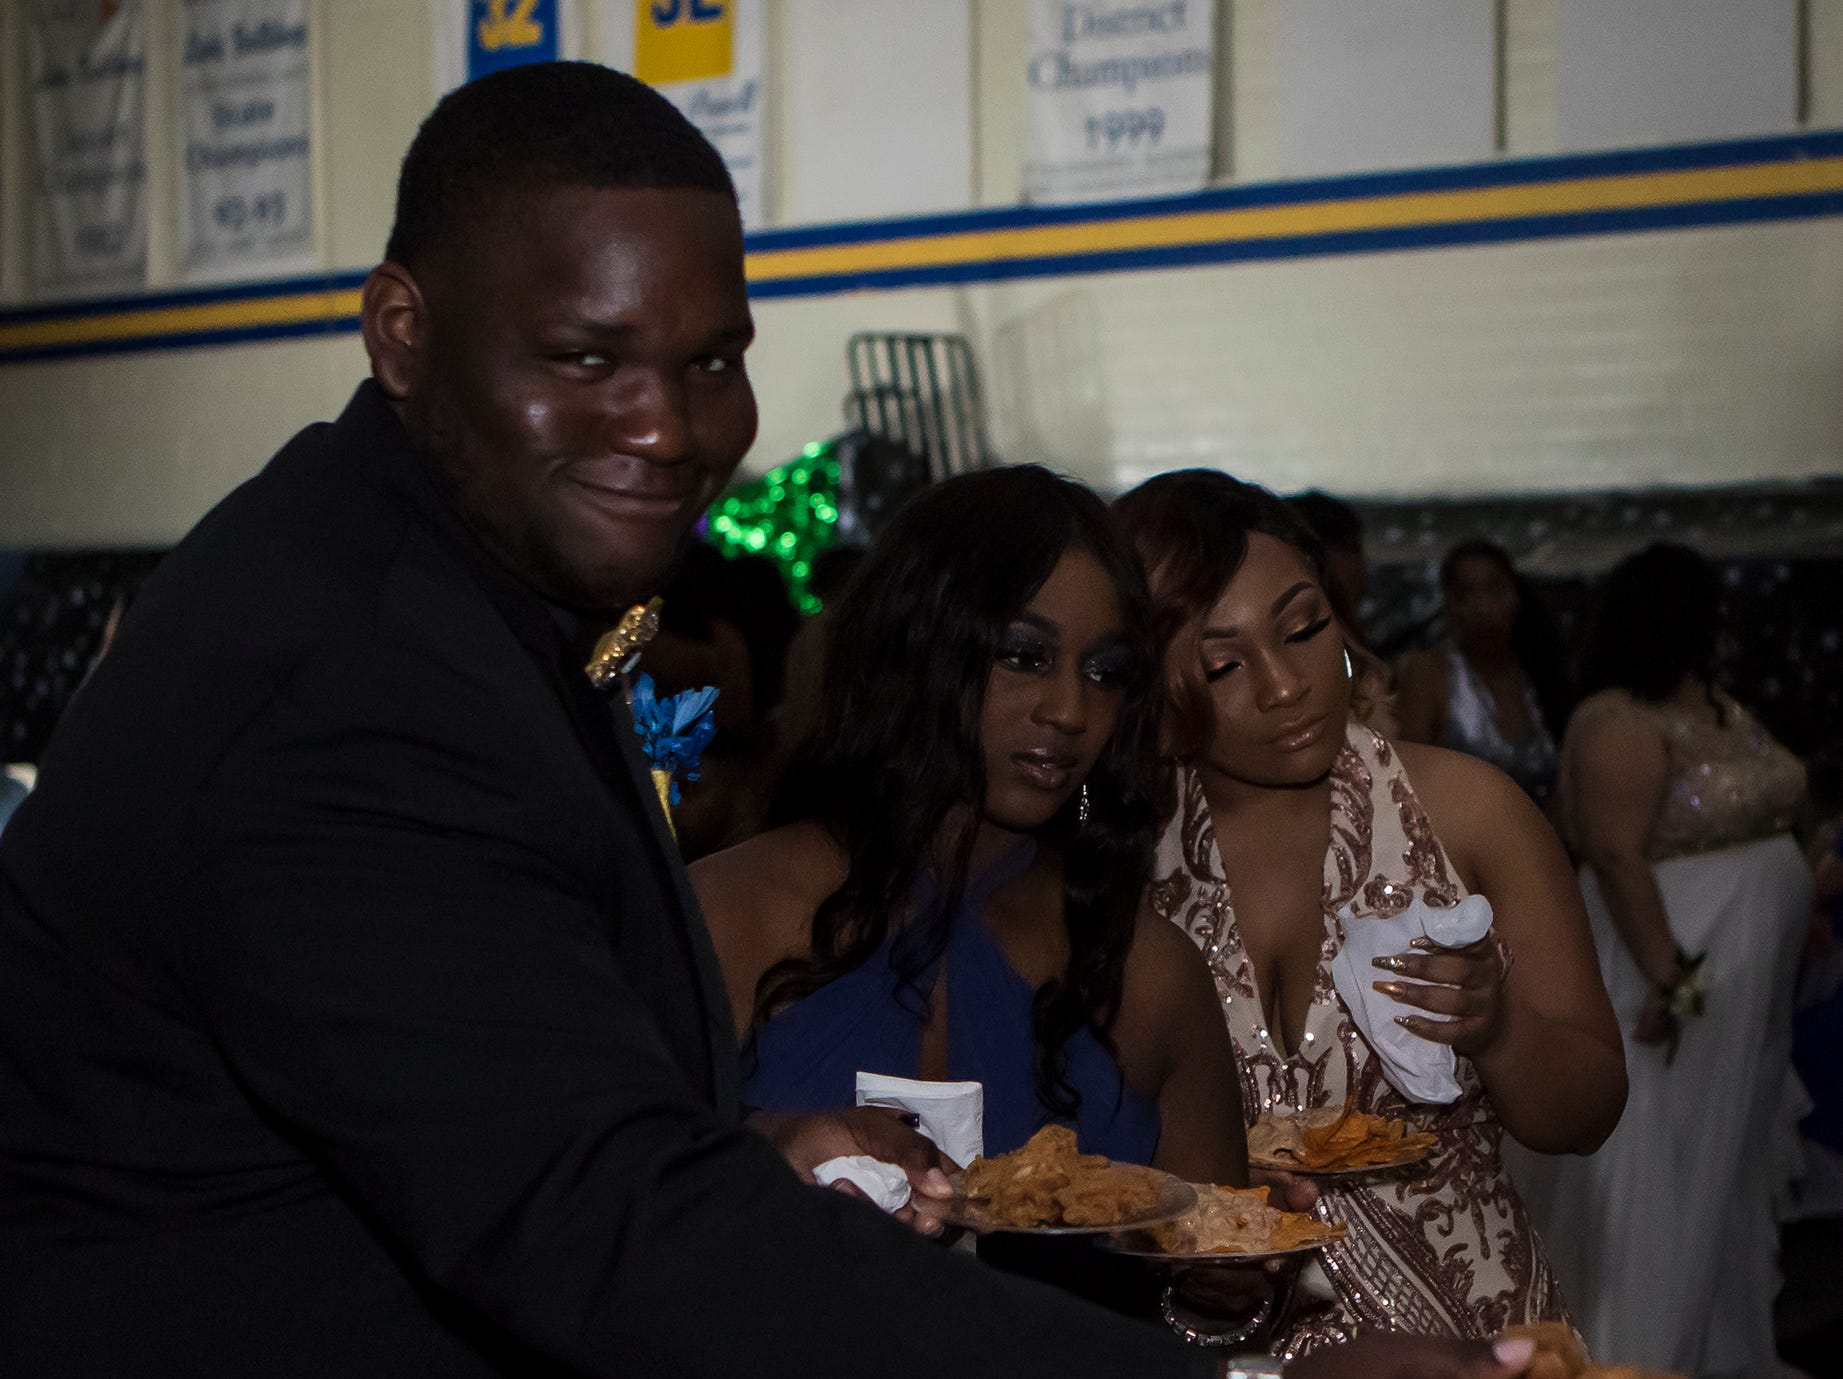 Carroll High School held its prom at the school's gym on April 12 in Monroe, La.